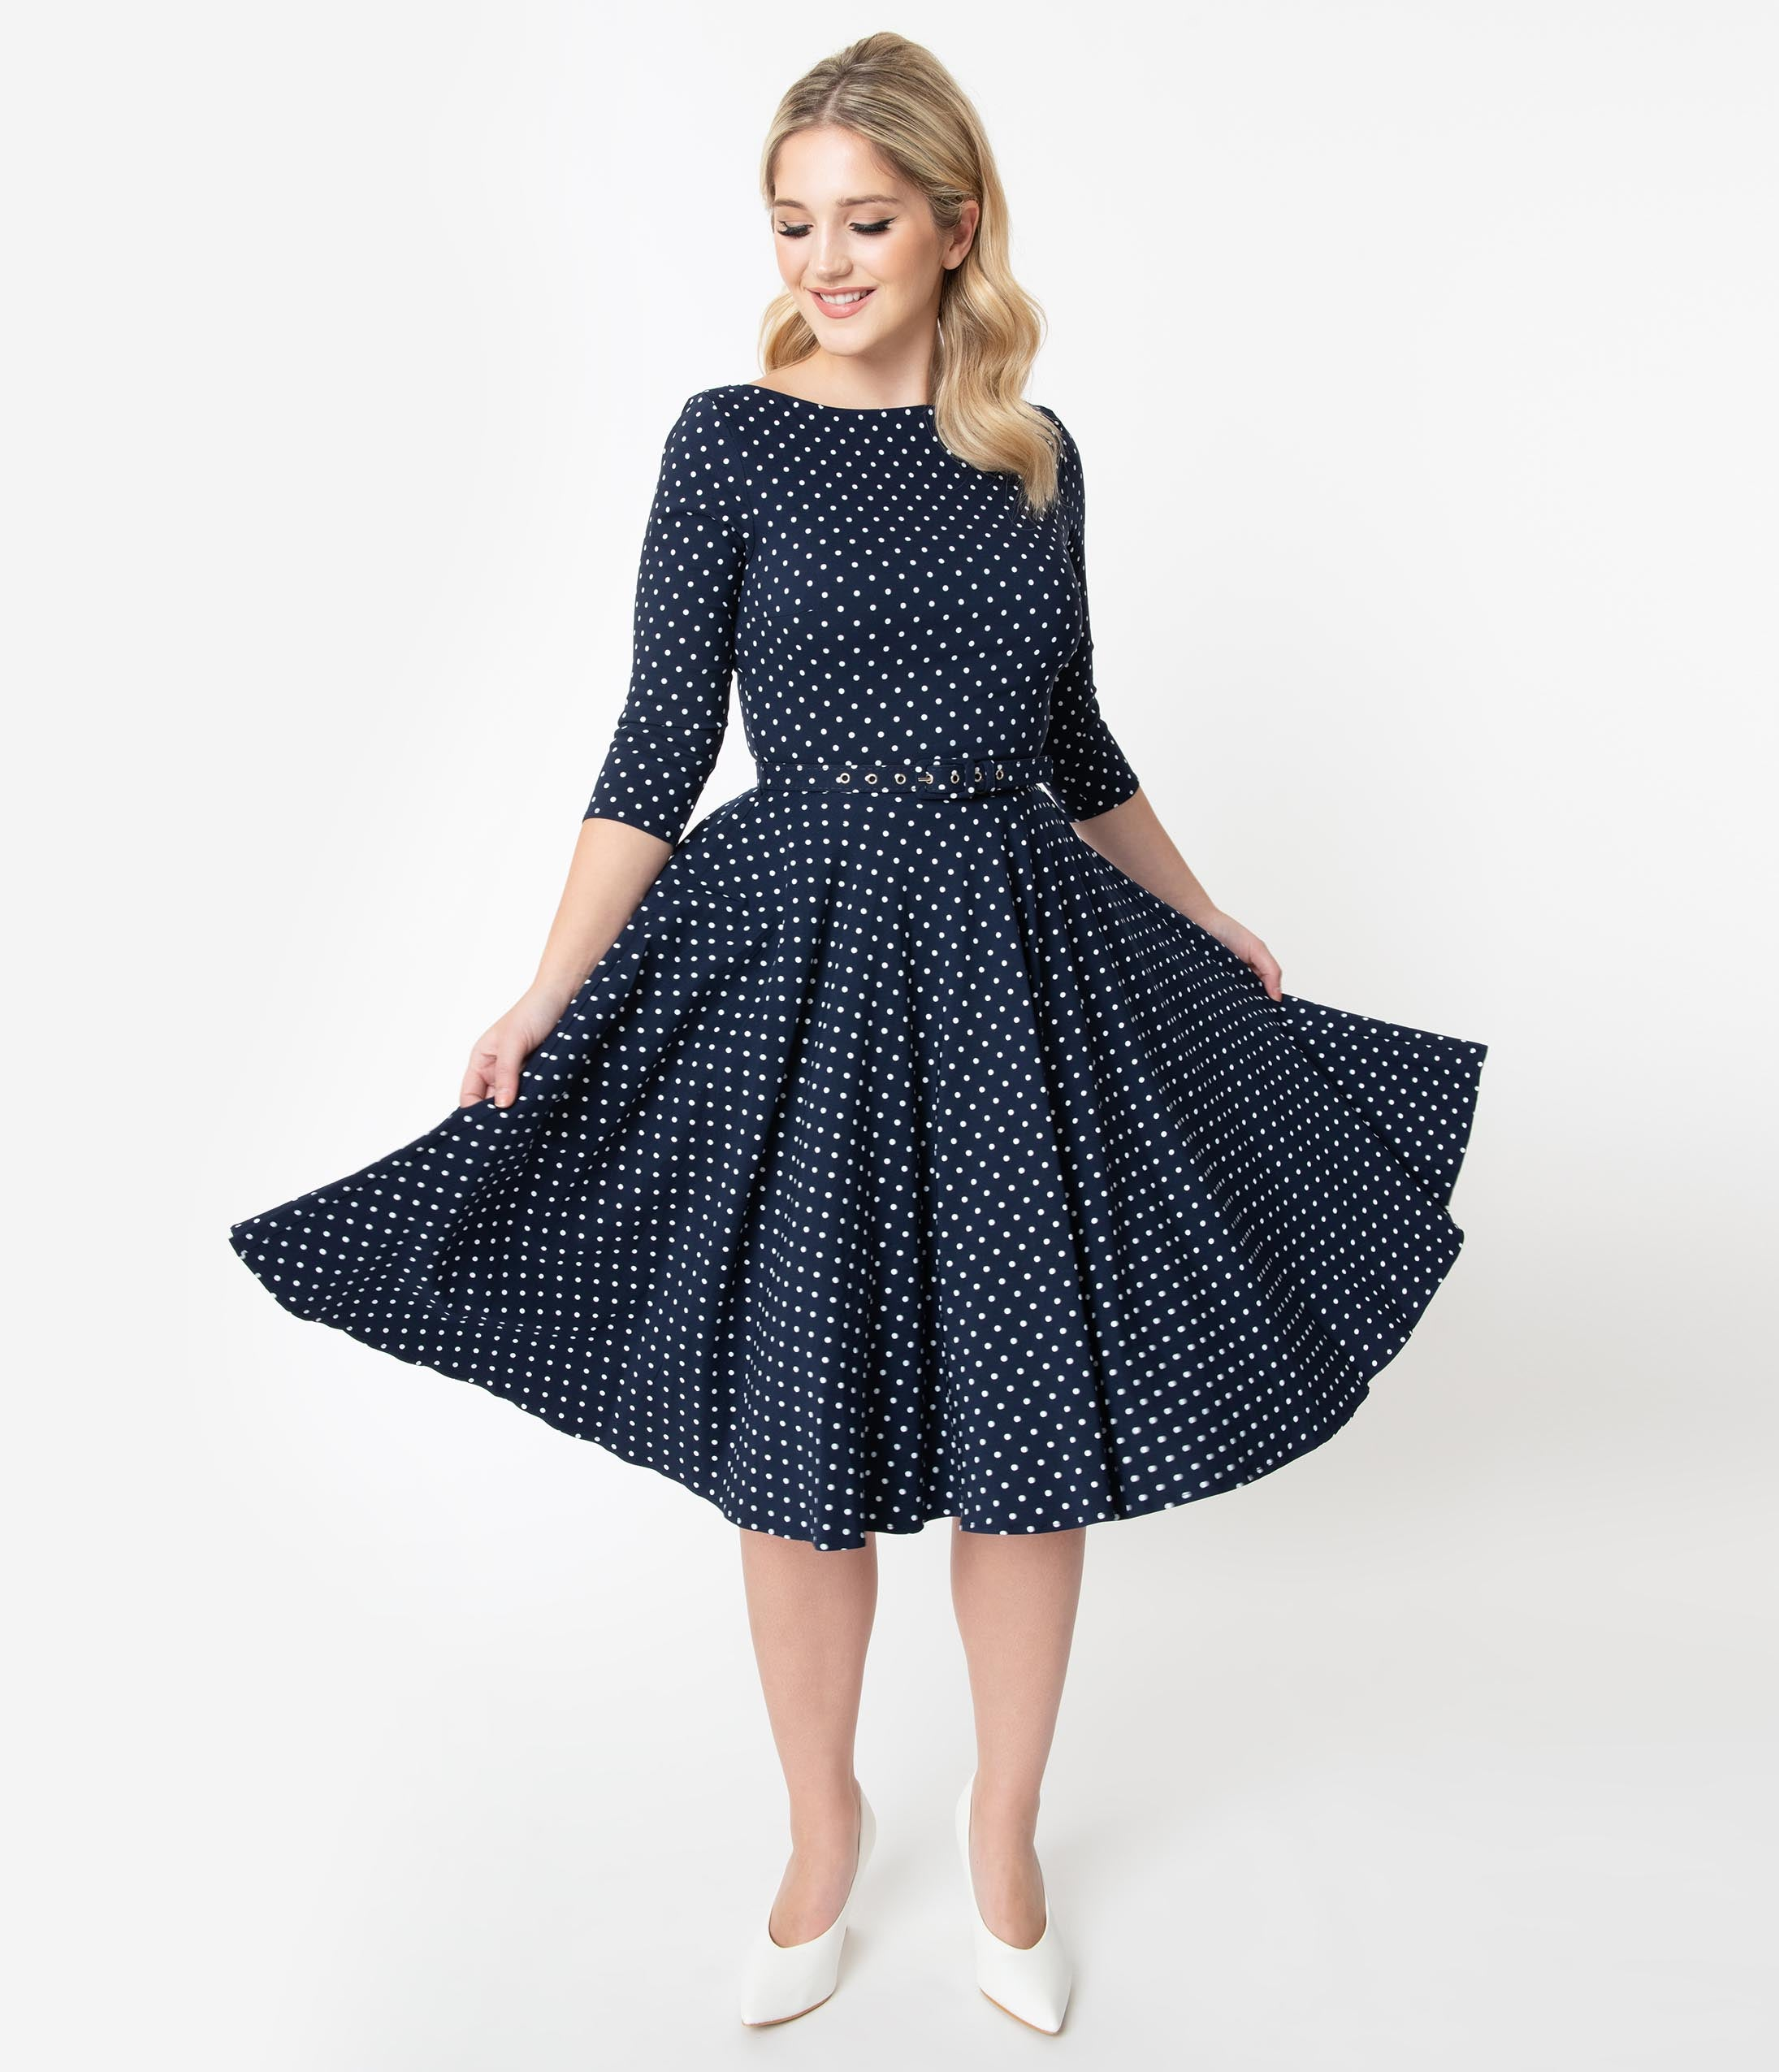 1950s Plus Size Dresses, Swing Dresses Unique Vintage 1950S Navy  White Pin Dot Sleeved Devon Swing Dress $88.00 AT vintagedancer.com